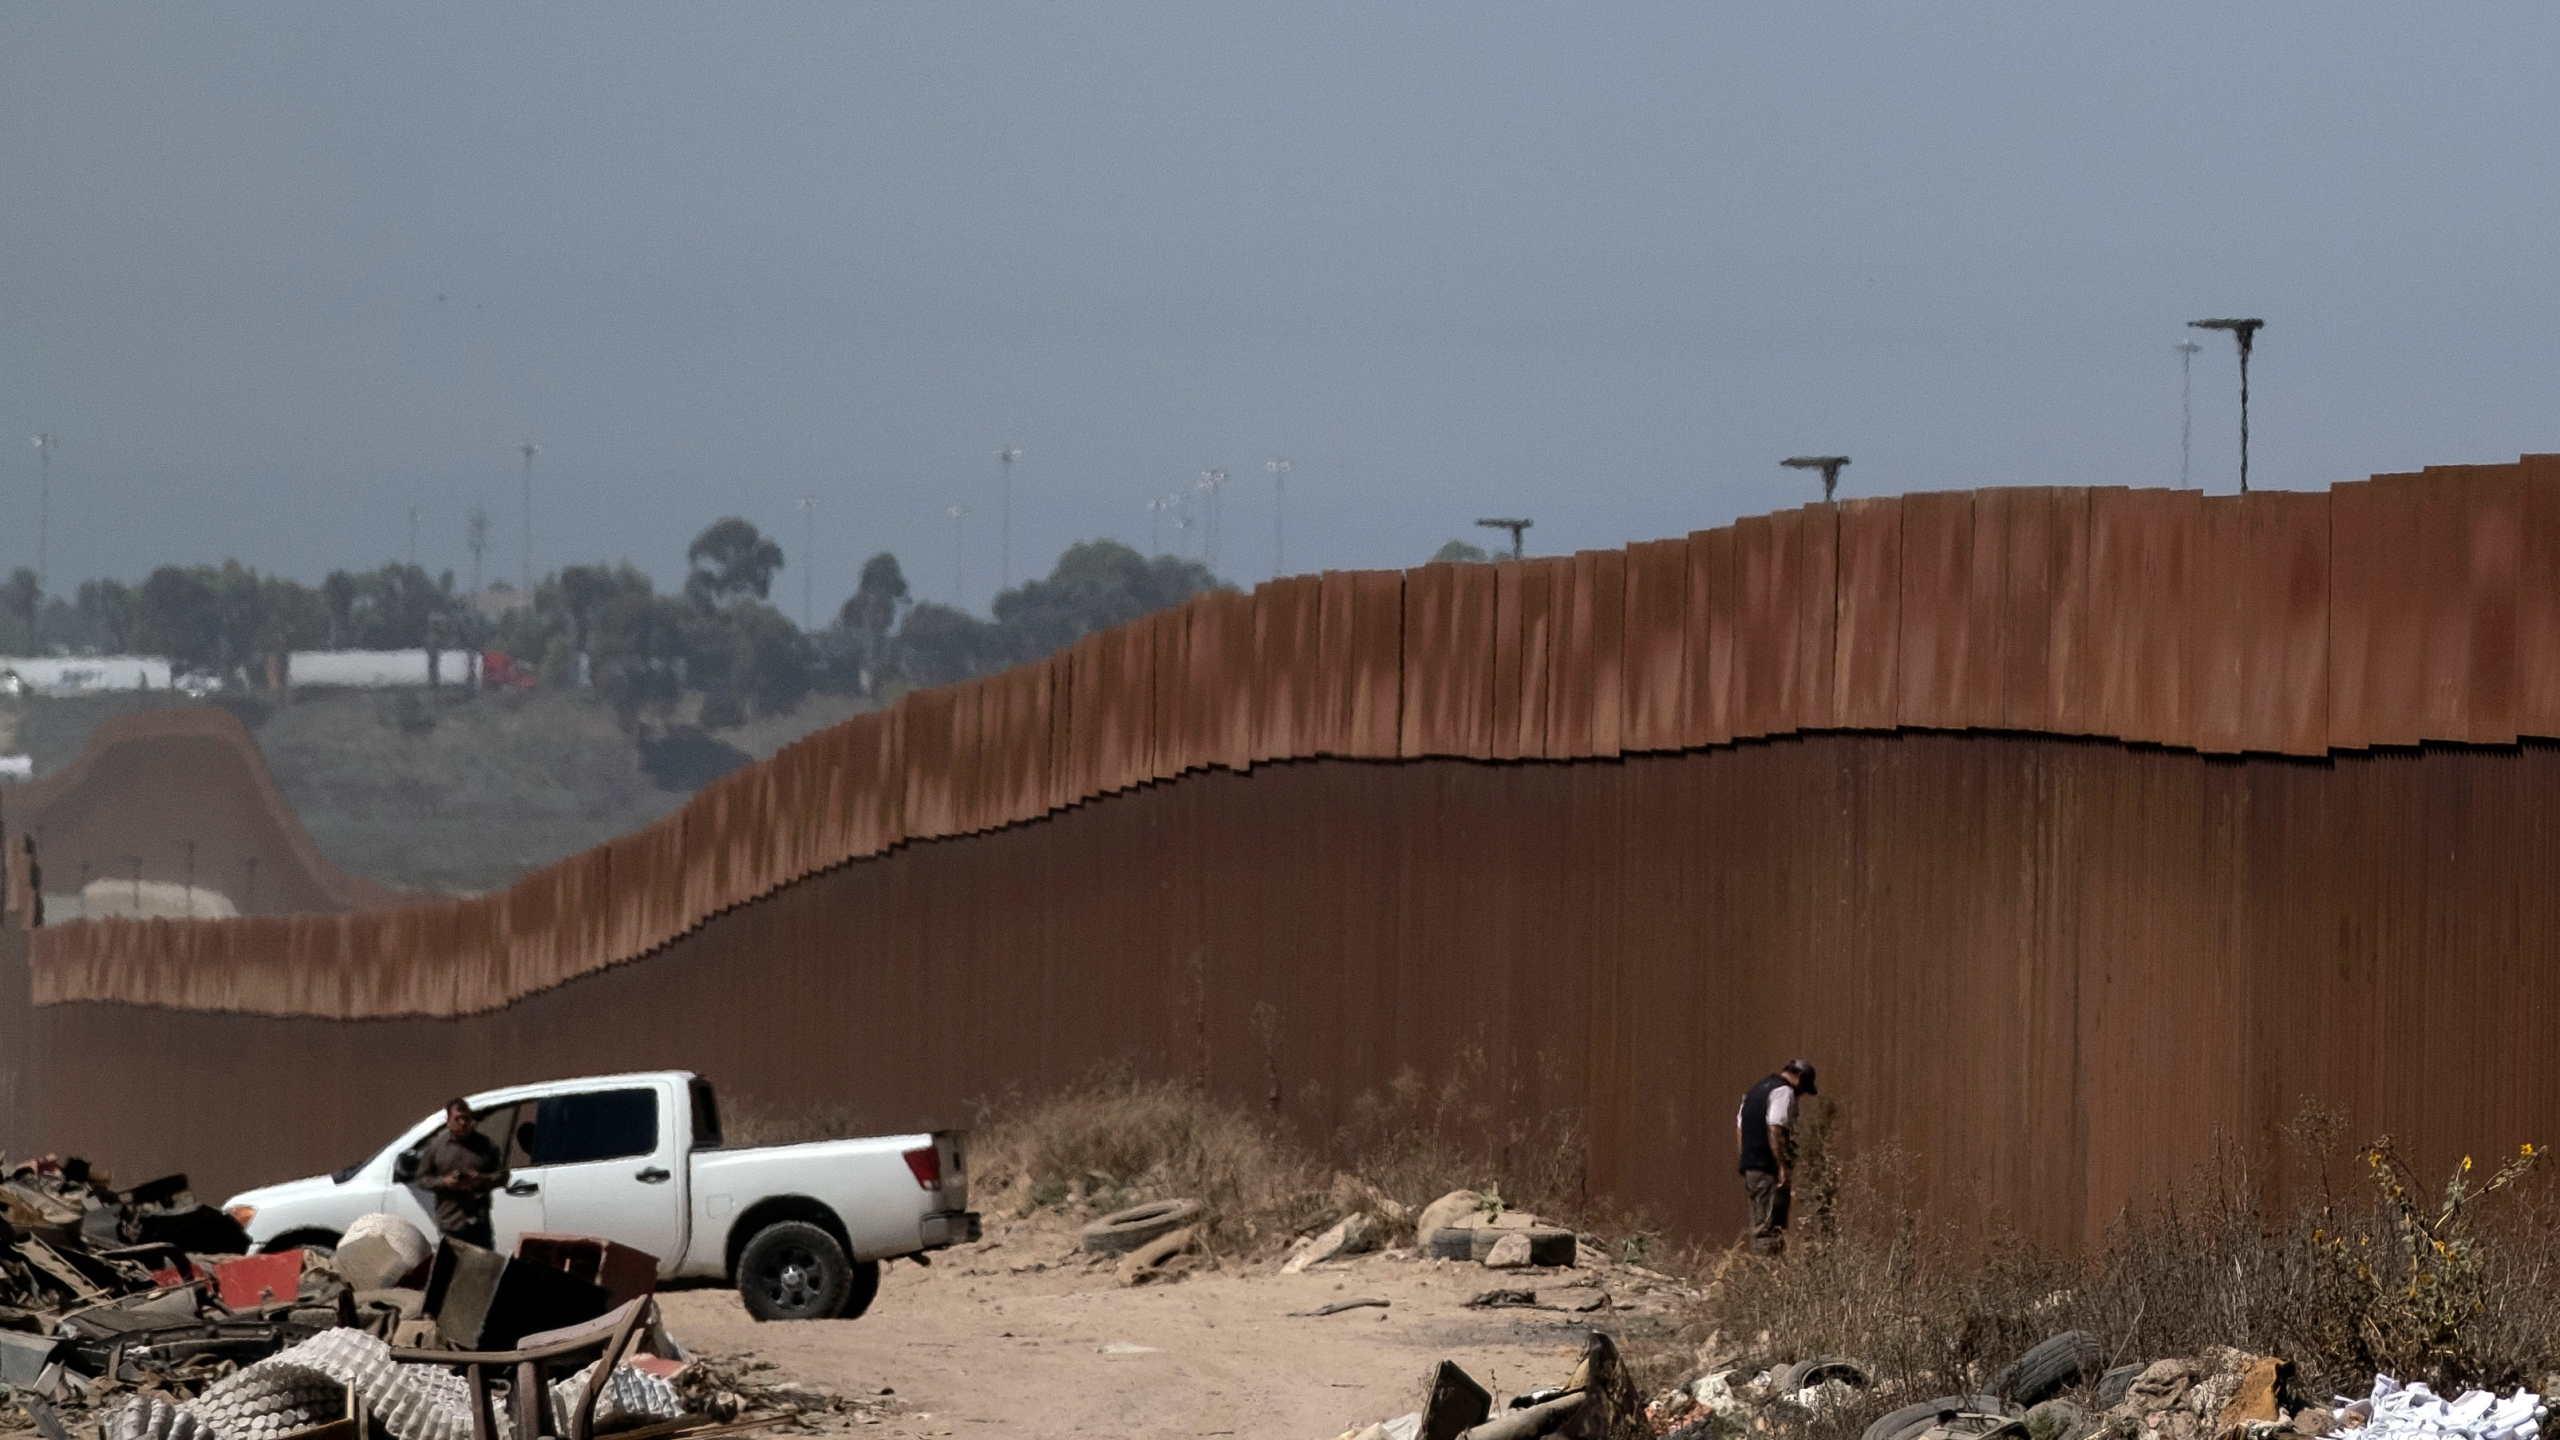 Mexican security forces patrol the U.S.-Mexico border fence in Tijuana Baja California state, Mexico, on Sept. 18, 2019, in preparation for U.S. President Donald Trump's visit to the border wall in Otay Mesa following a rally in San Diego. (Credit: GUILLERMO ARIAS/AFP/Getty Images)